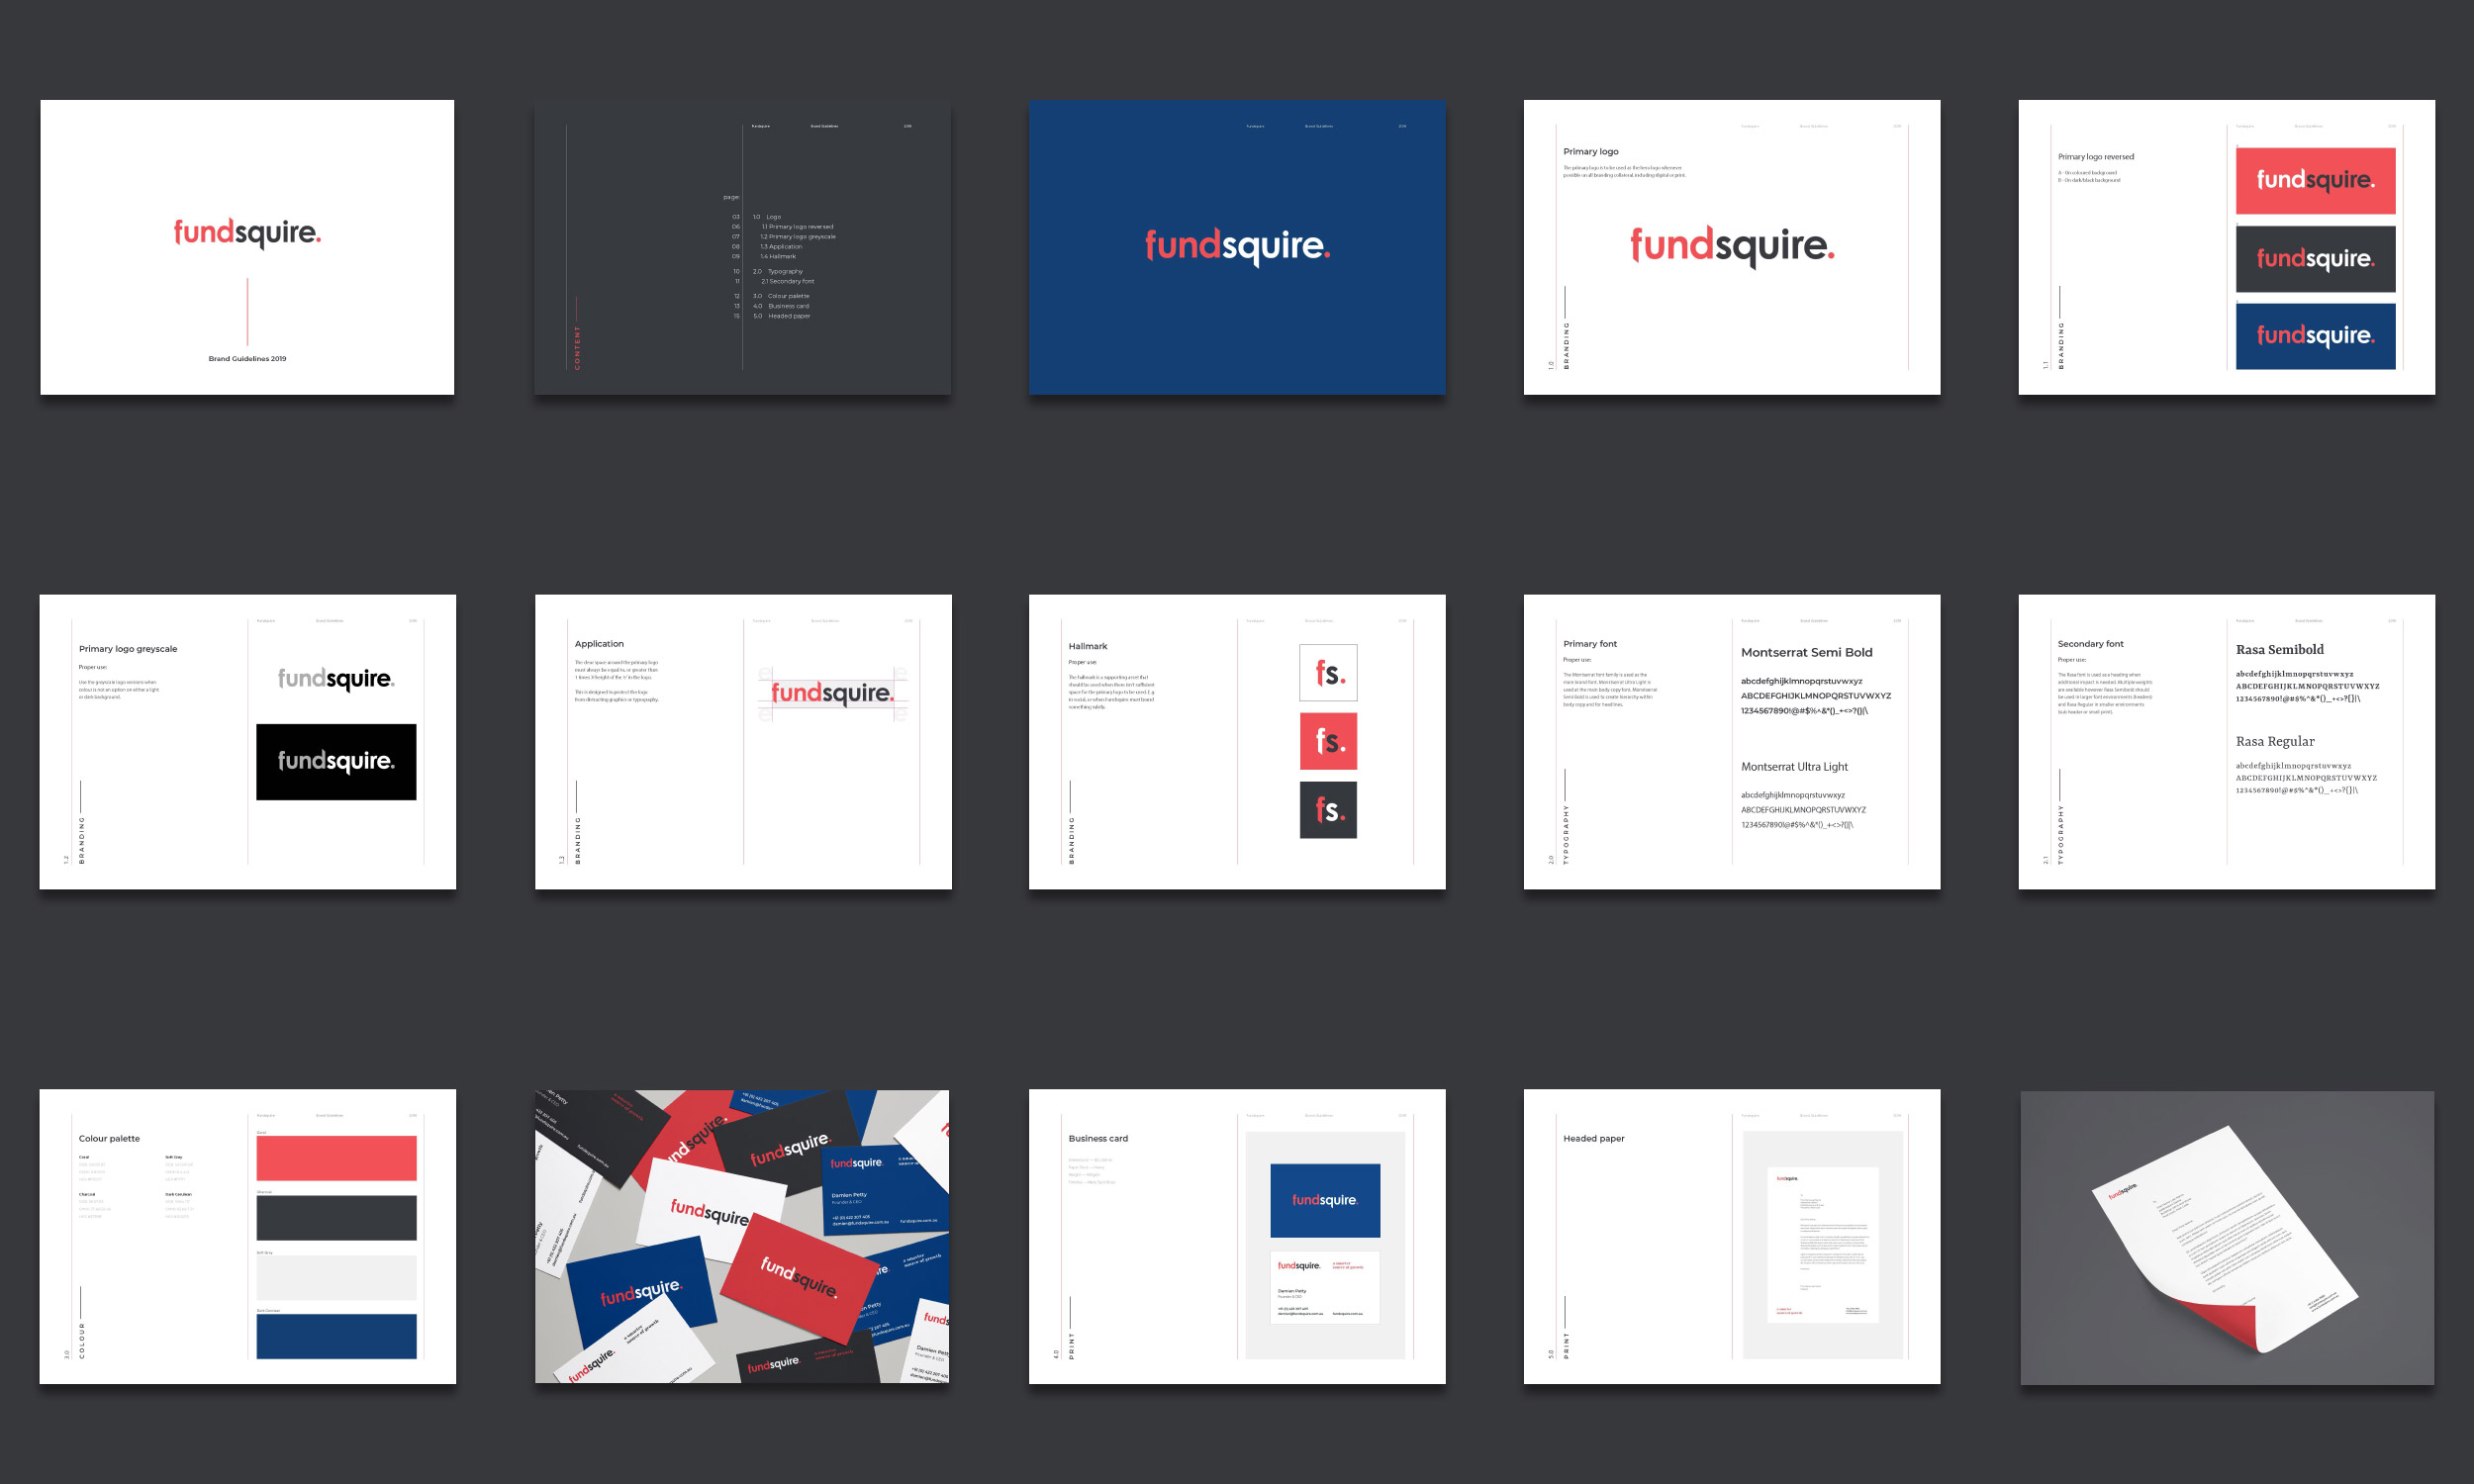 Nectar-&-Co-Fundsquire-Financial-Services-Brand-Strategy-Design-Sydney.jpg